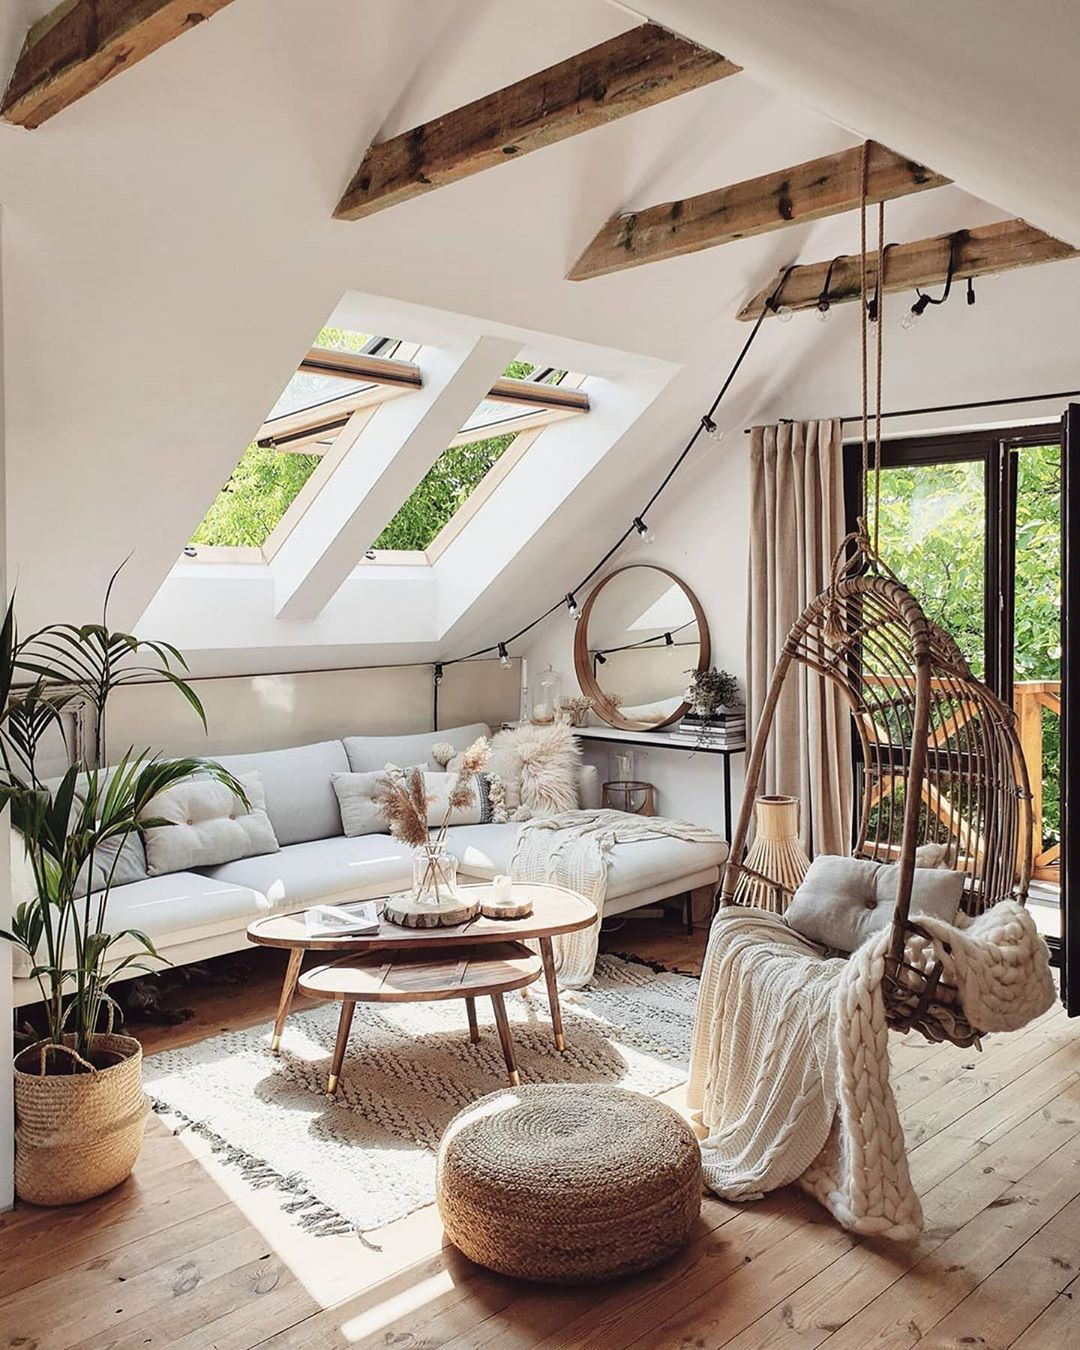 Photo of Relaxation nook with plenty natural light